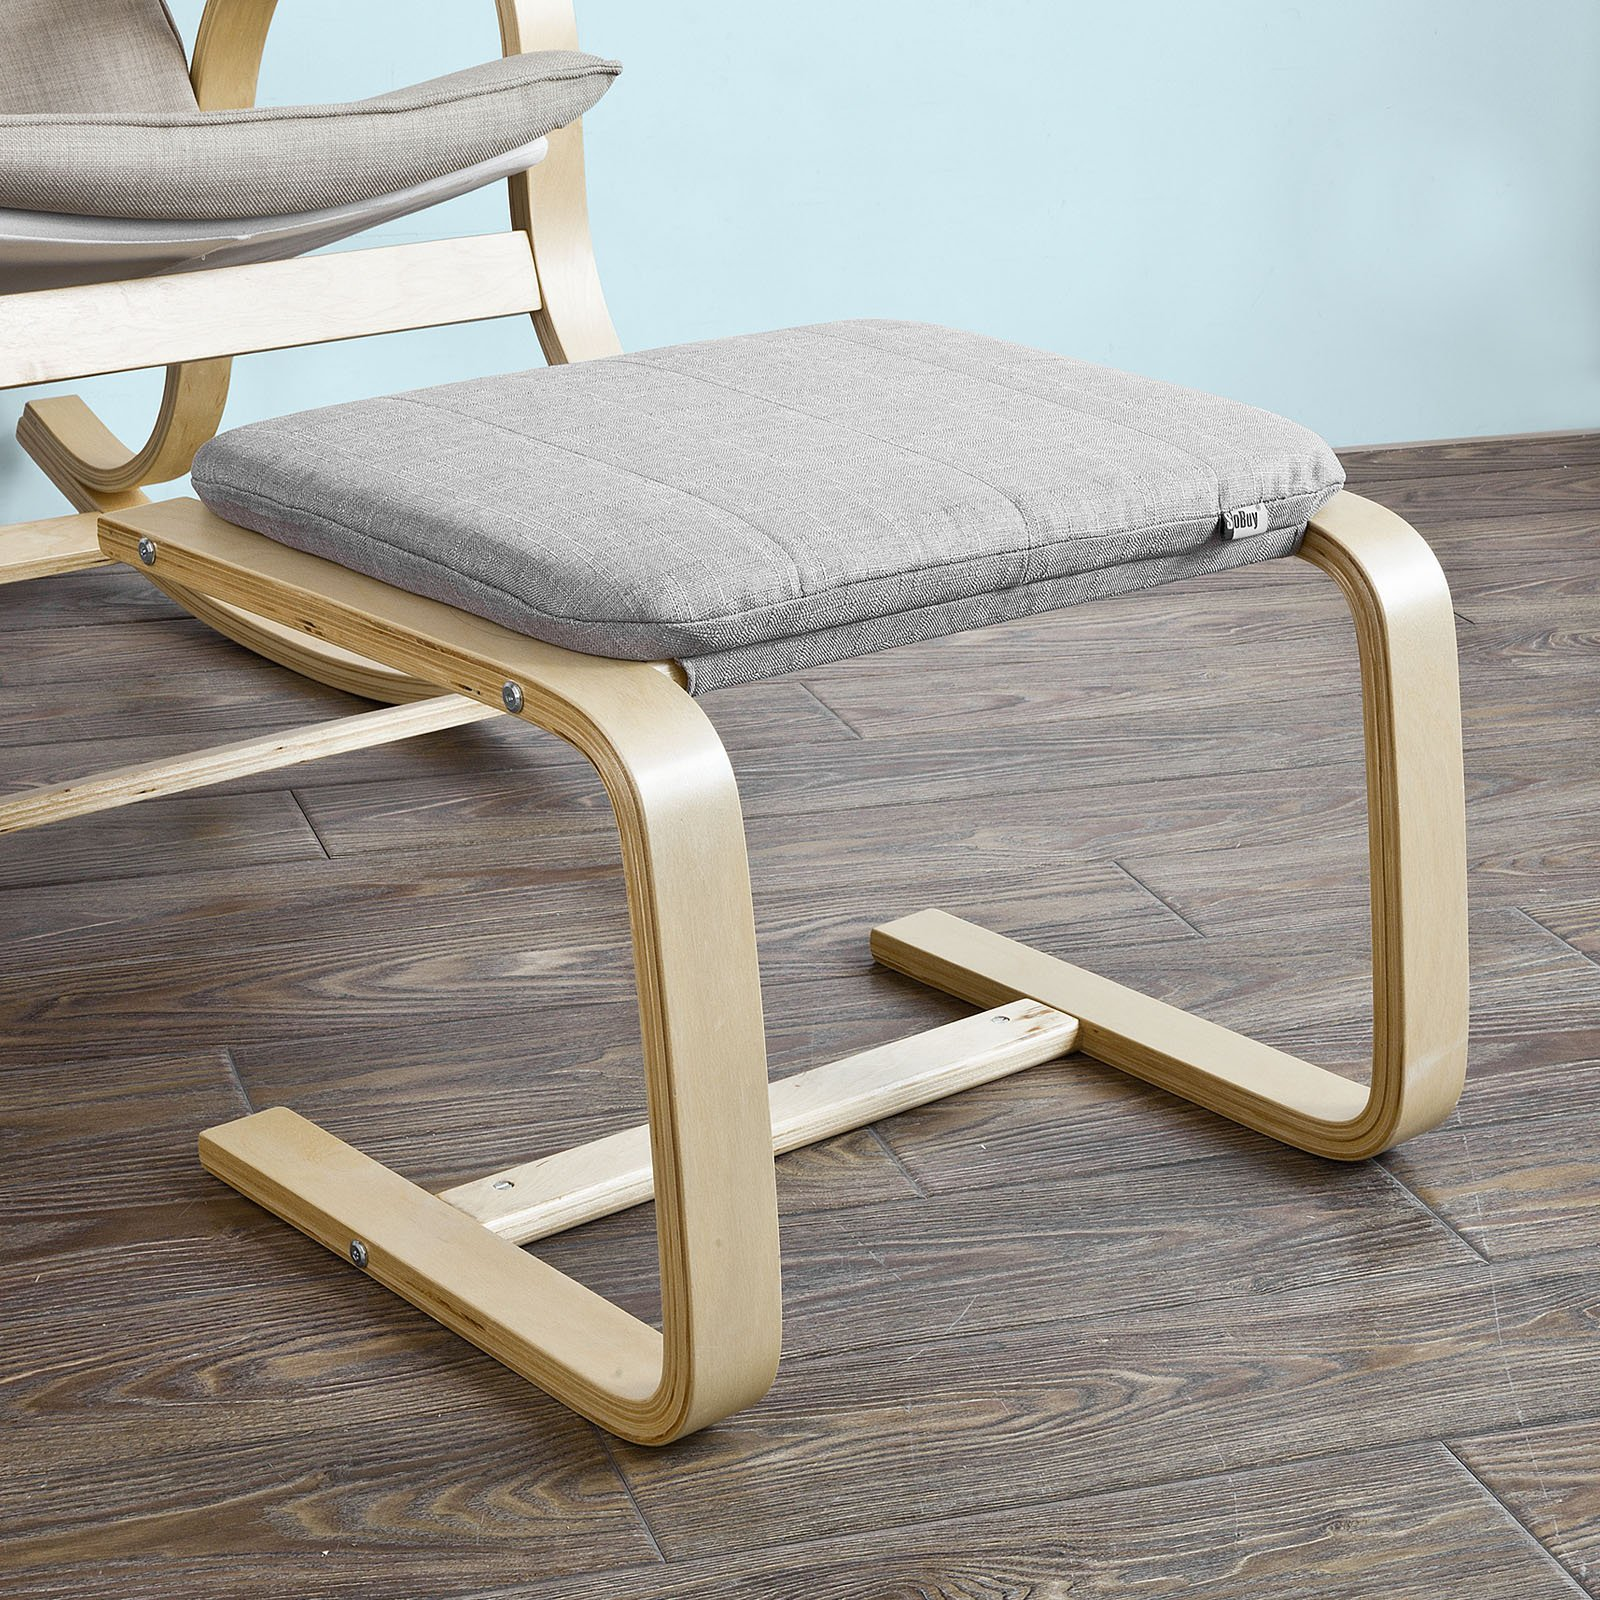 SoBuy FST38-HG, Beech Wood Footstool Footrest with Cushion, Foot Leg Rest